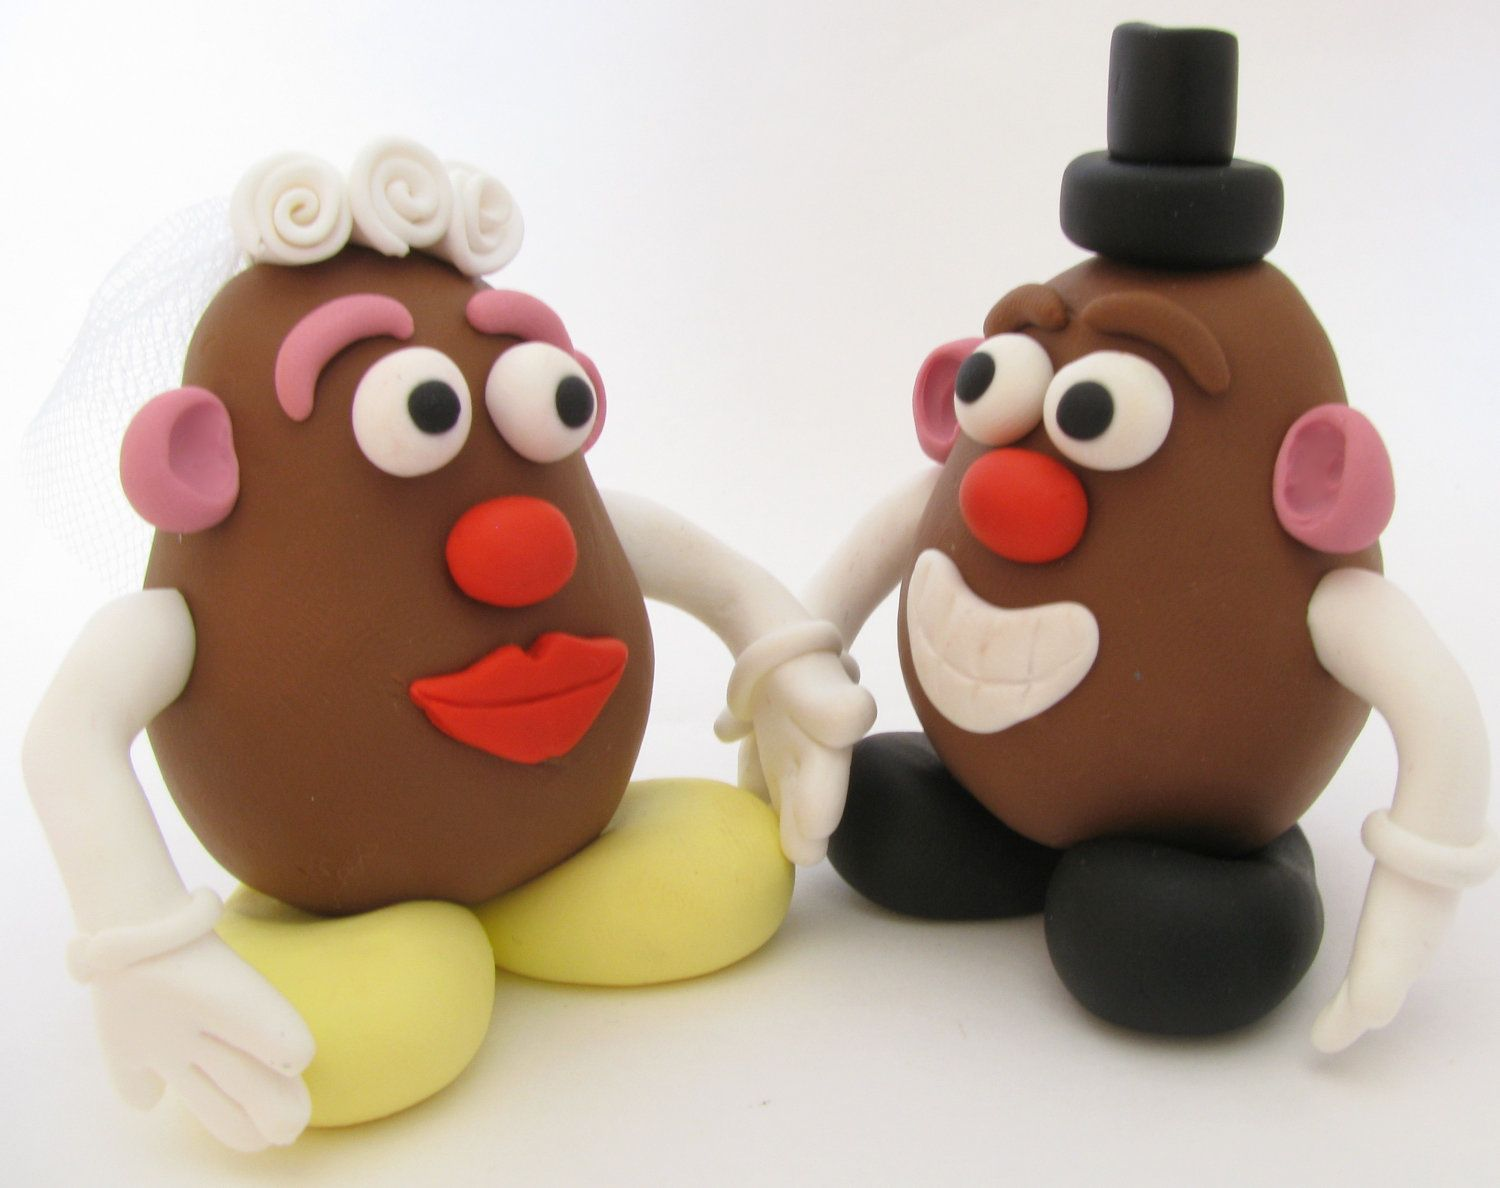 Mr and Mrs potato head wedding cake topper Wedding Funny and Cakes